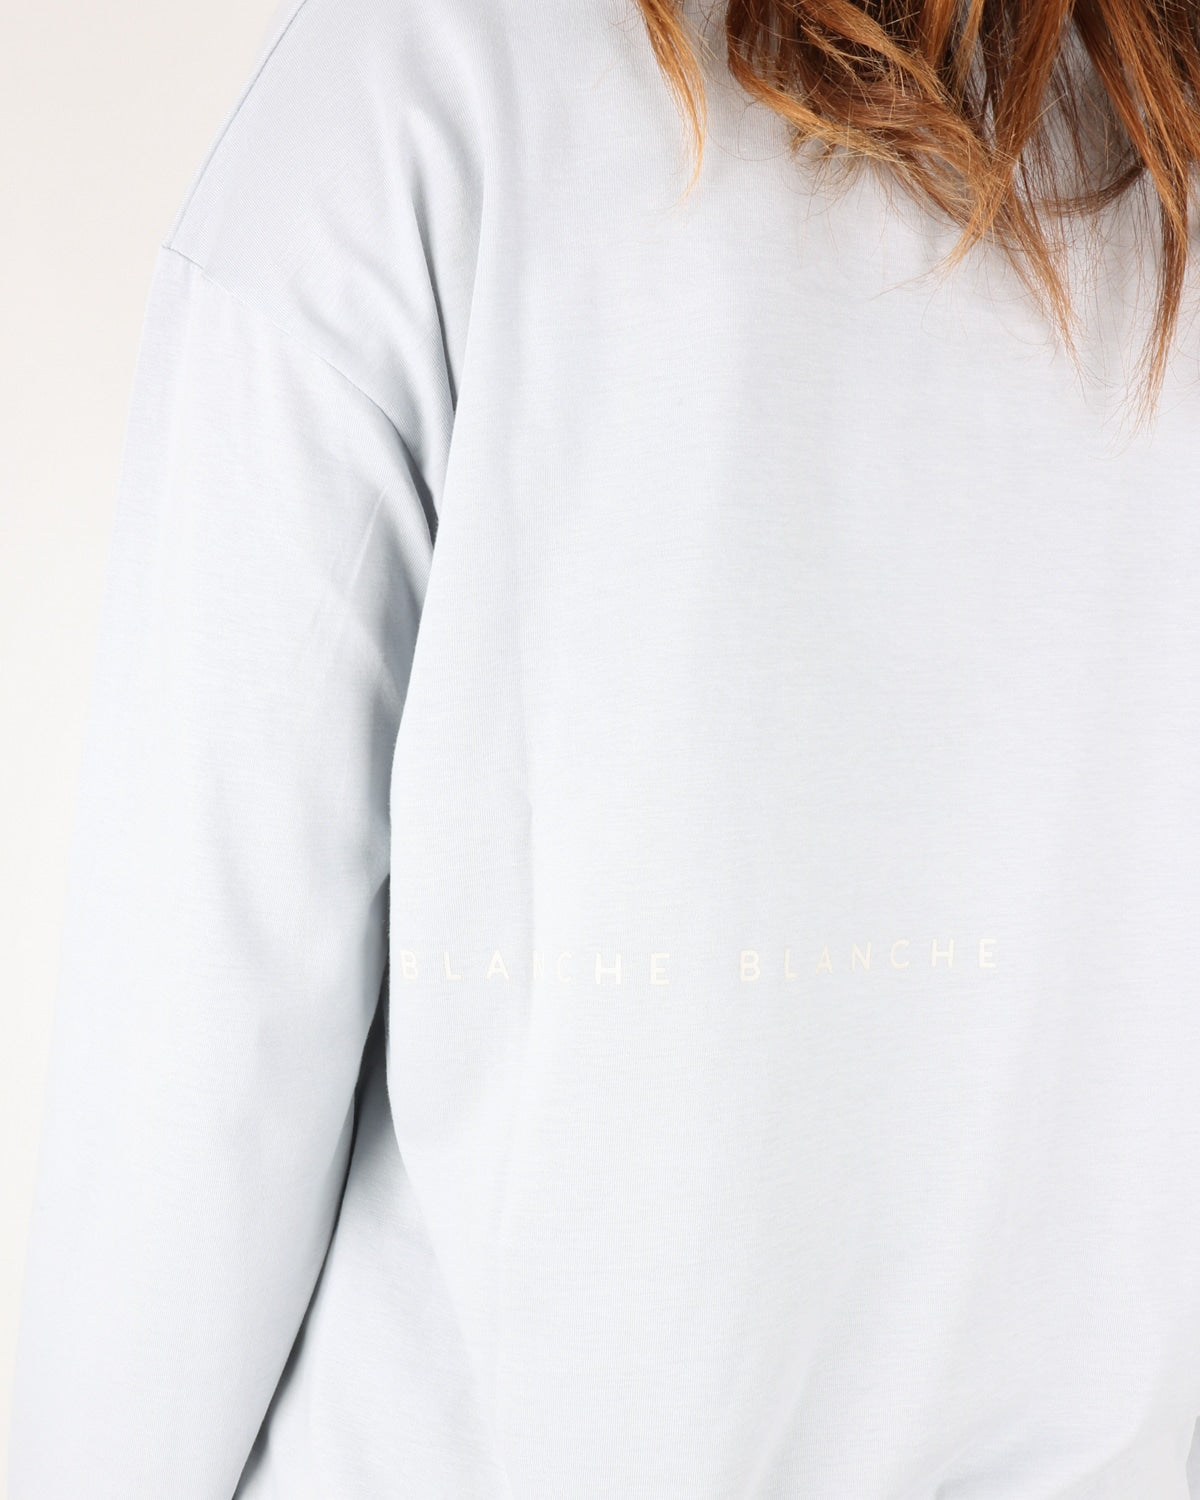 blanche_main light longsleeve_arctic ice_4_4